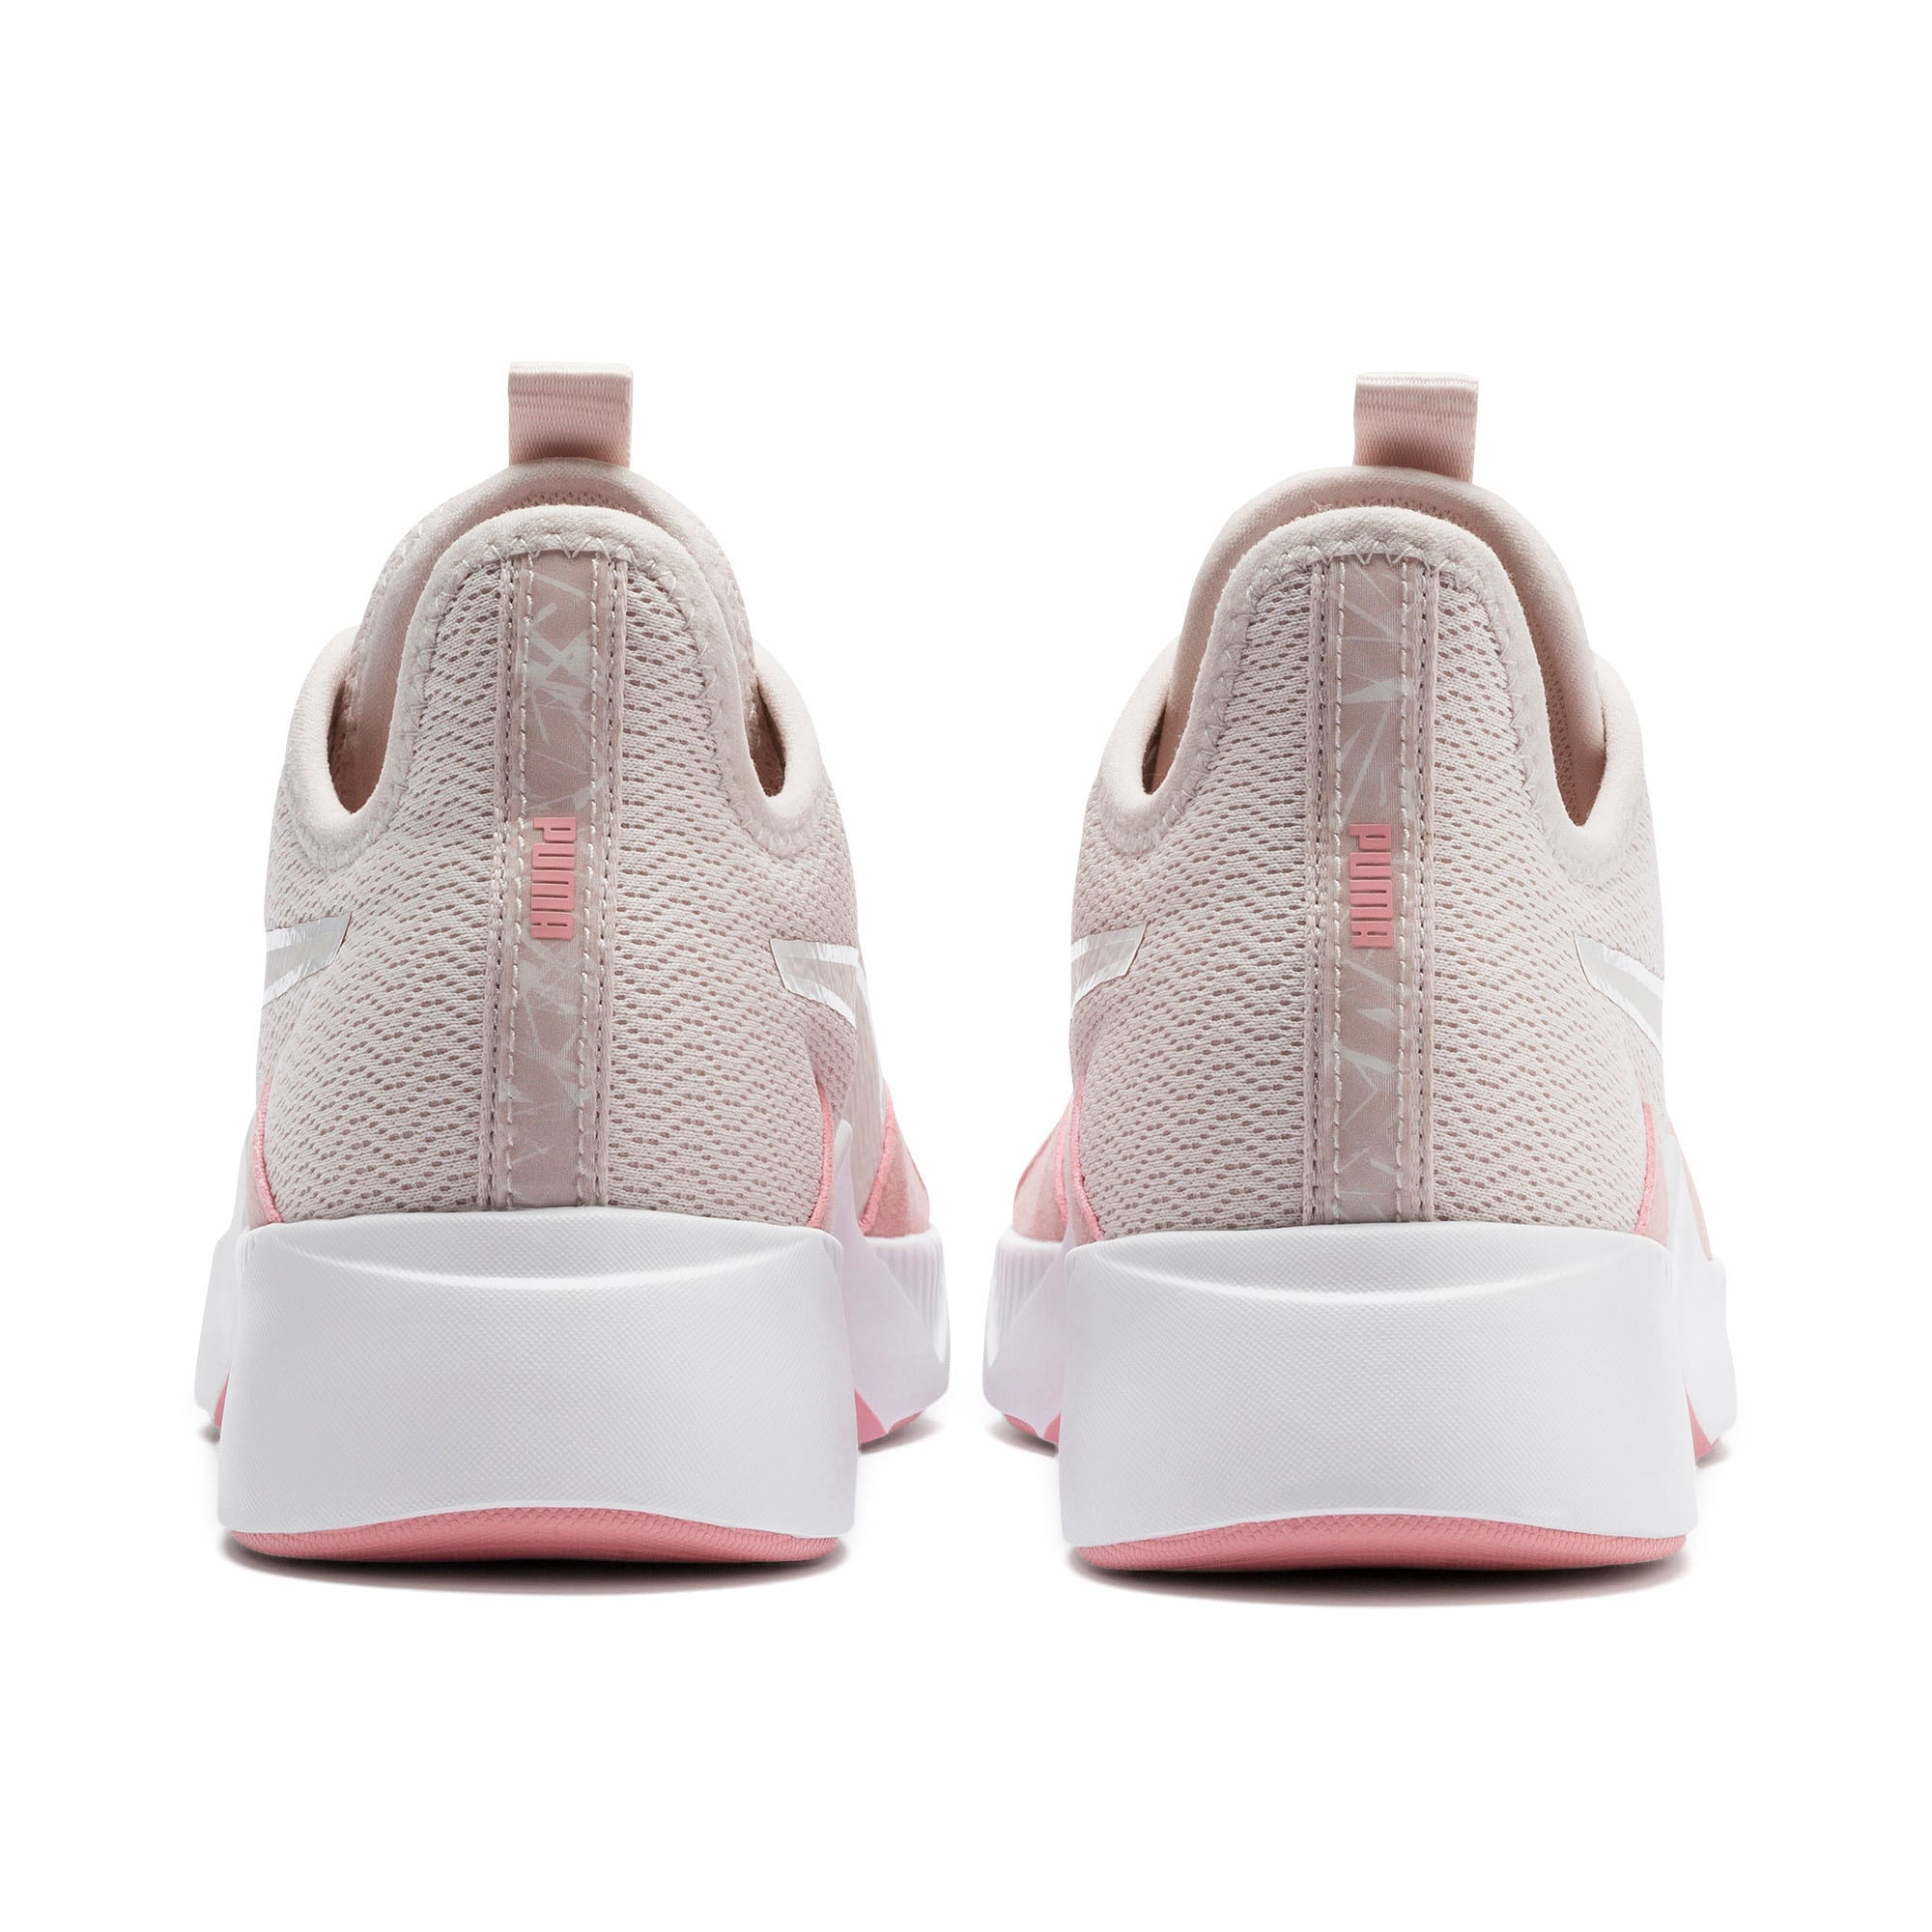 Thumbnail 5 of Incite FS Shift Women's Trainers, Pastel Parchment-Rose-White, medium-IND